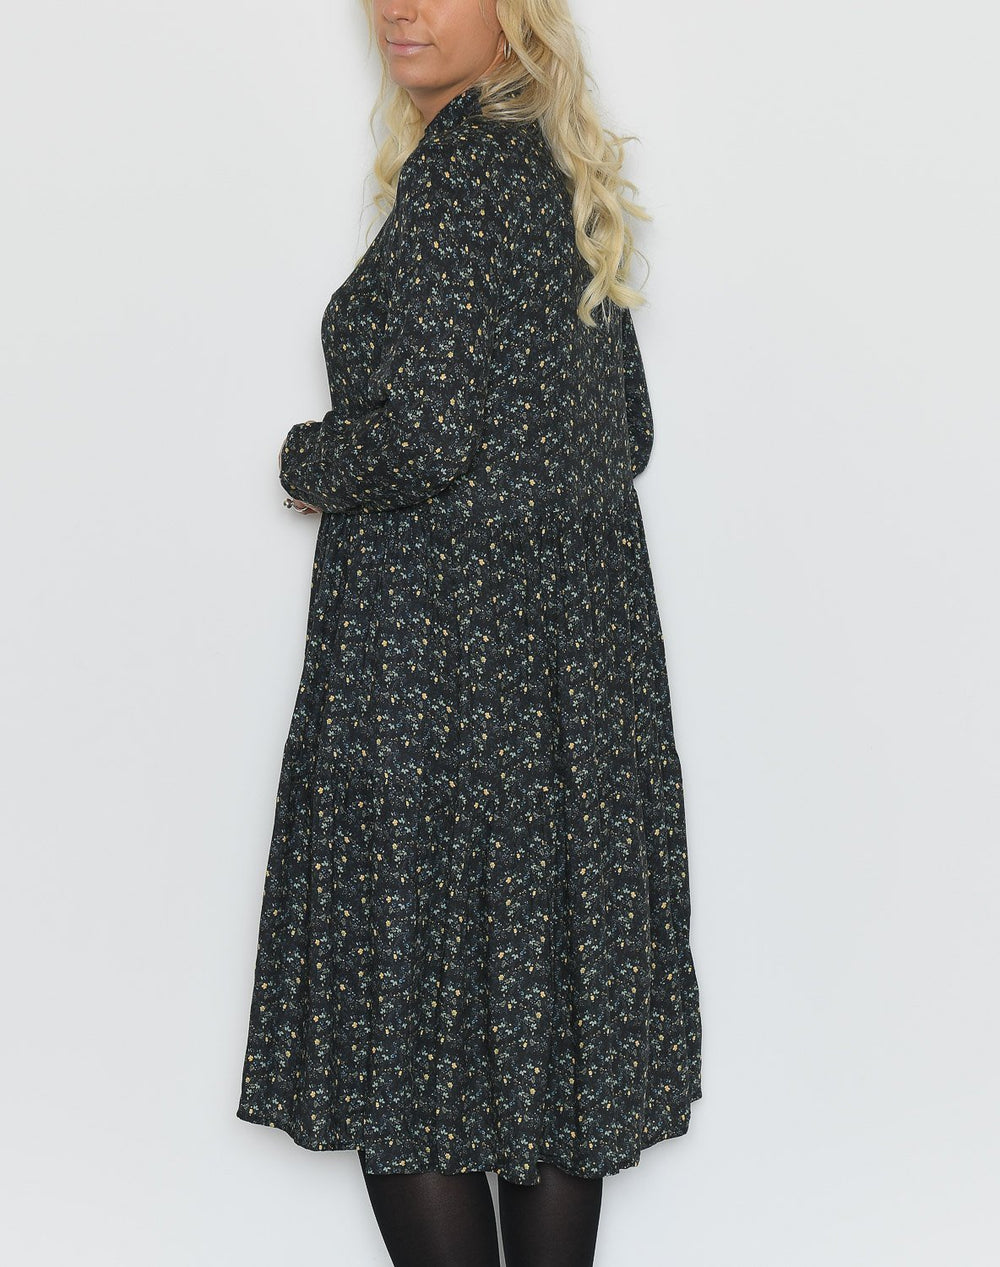 Noella Lipe dress black flower - Online-Mode